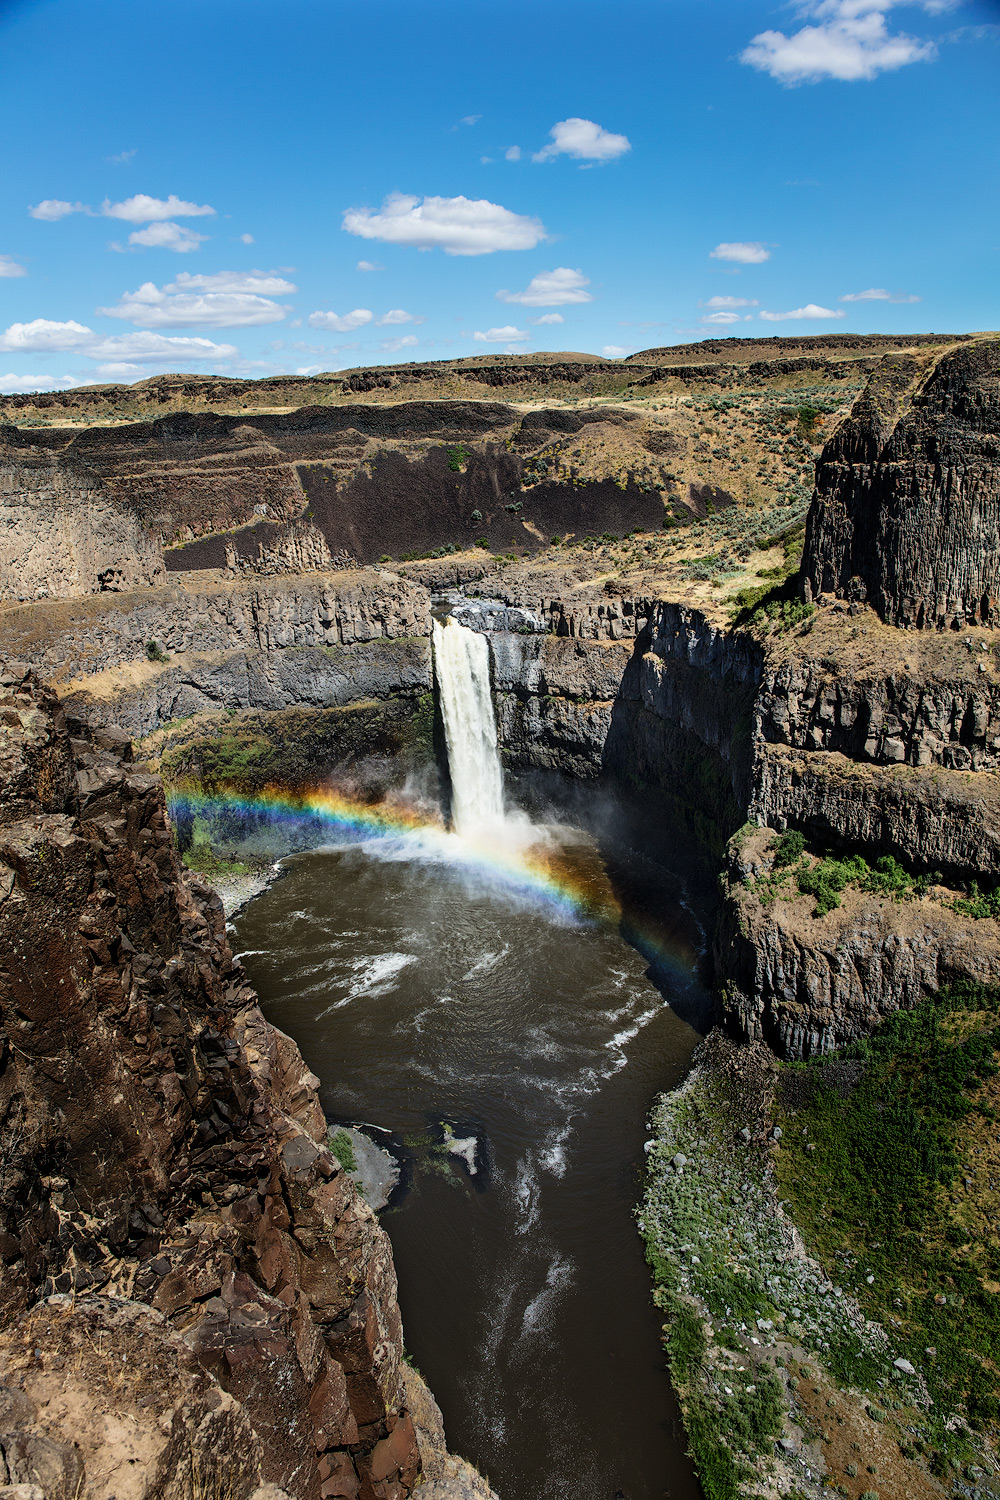 Palouse Falls is very popular with photographers, we will visit this state park as part of the workshop.